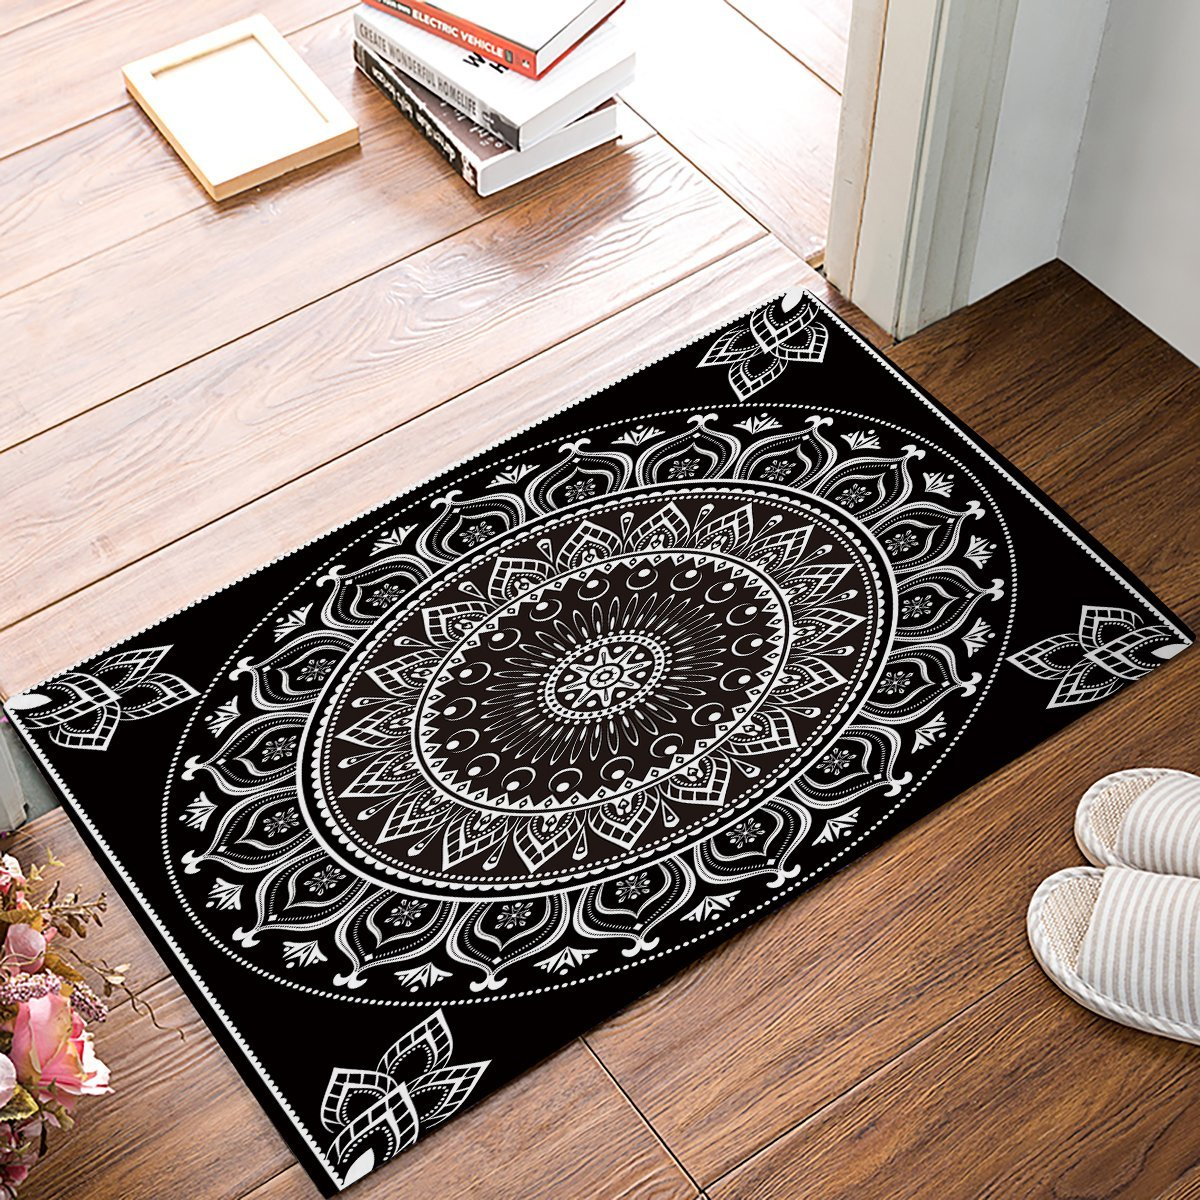 Black And White Mandala Bohemia Door Mats Kitchen Floor